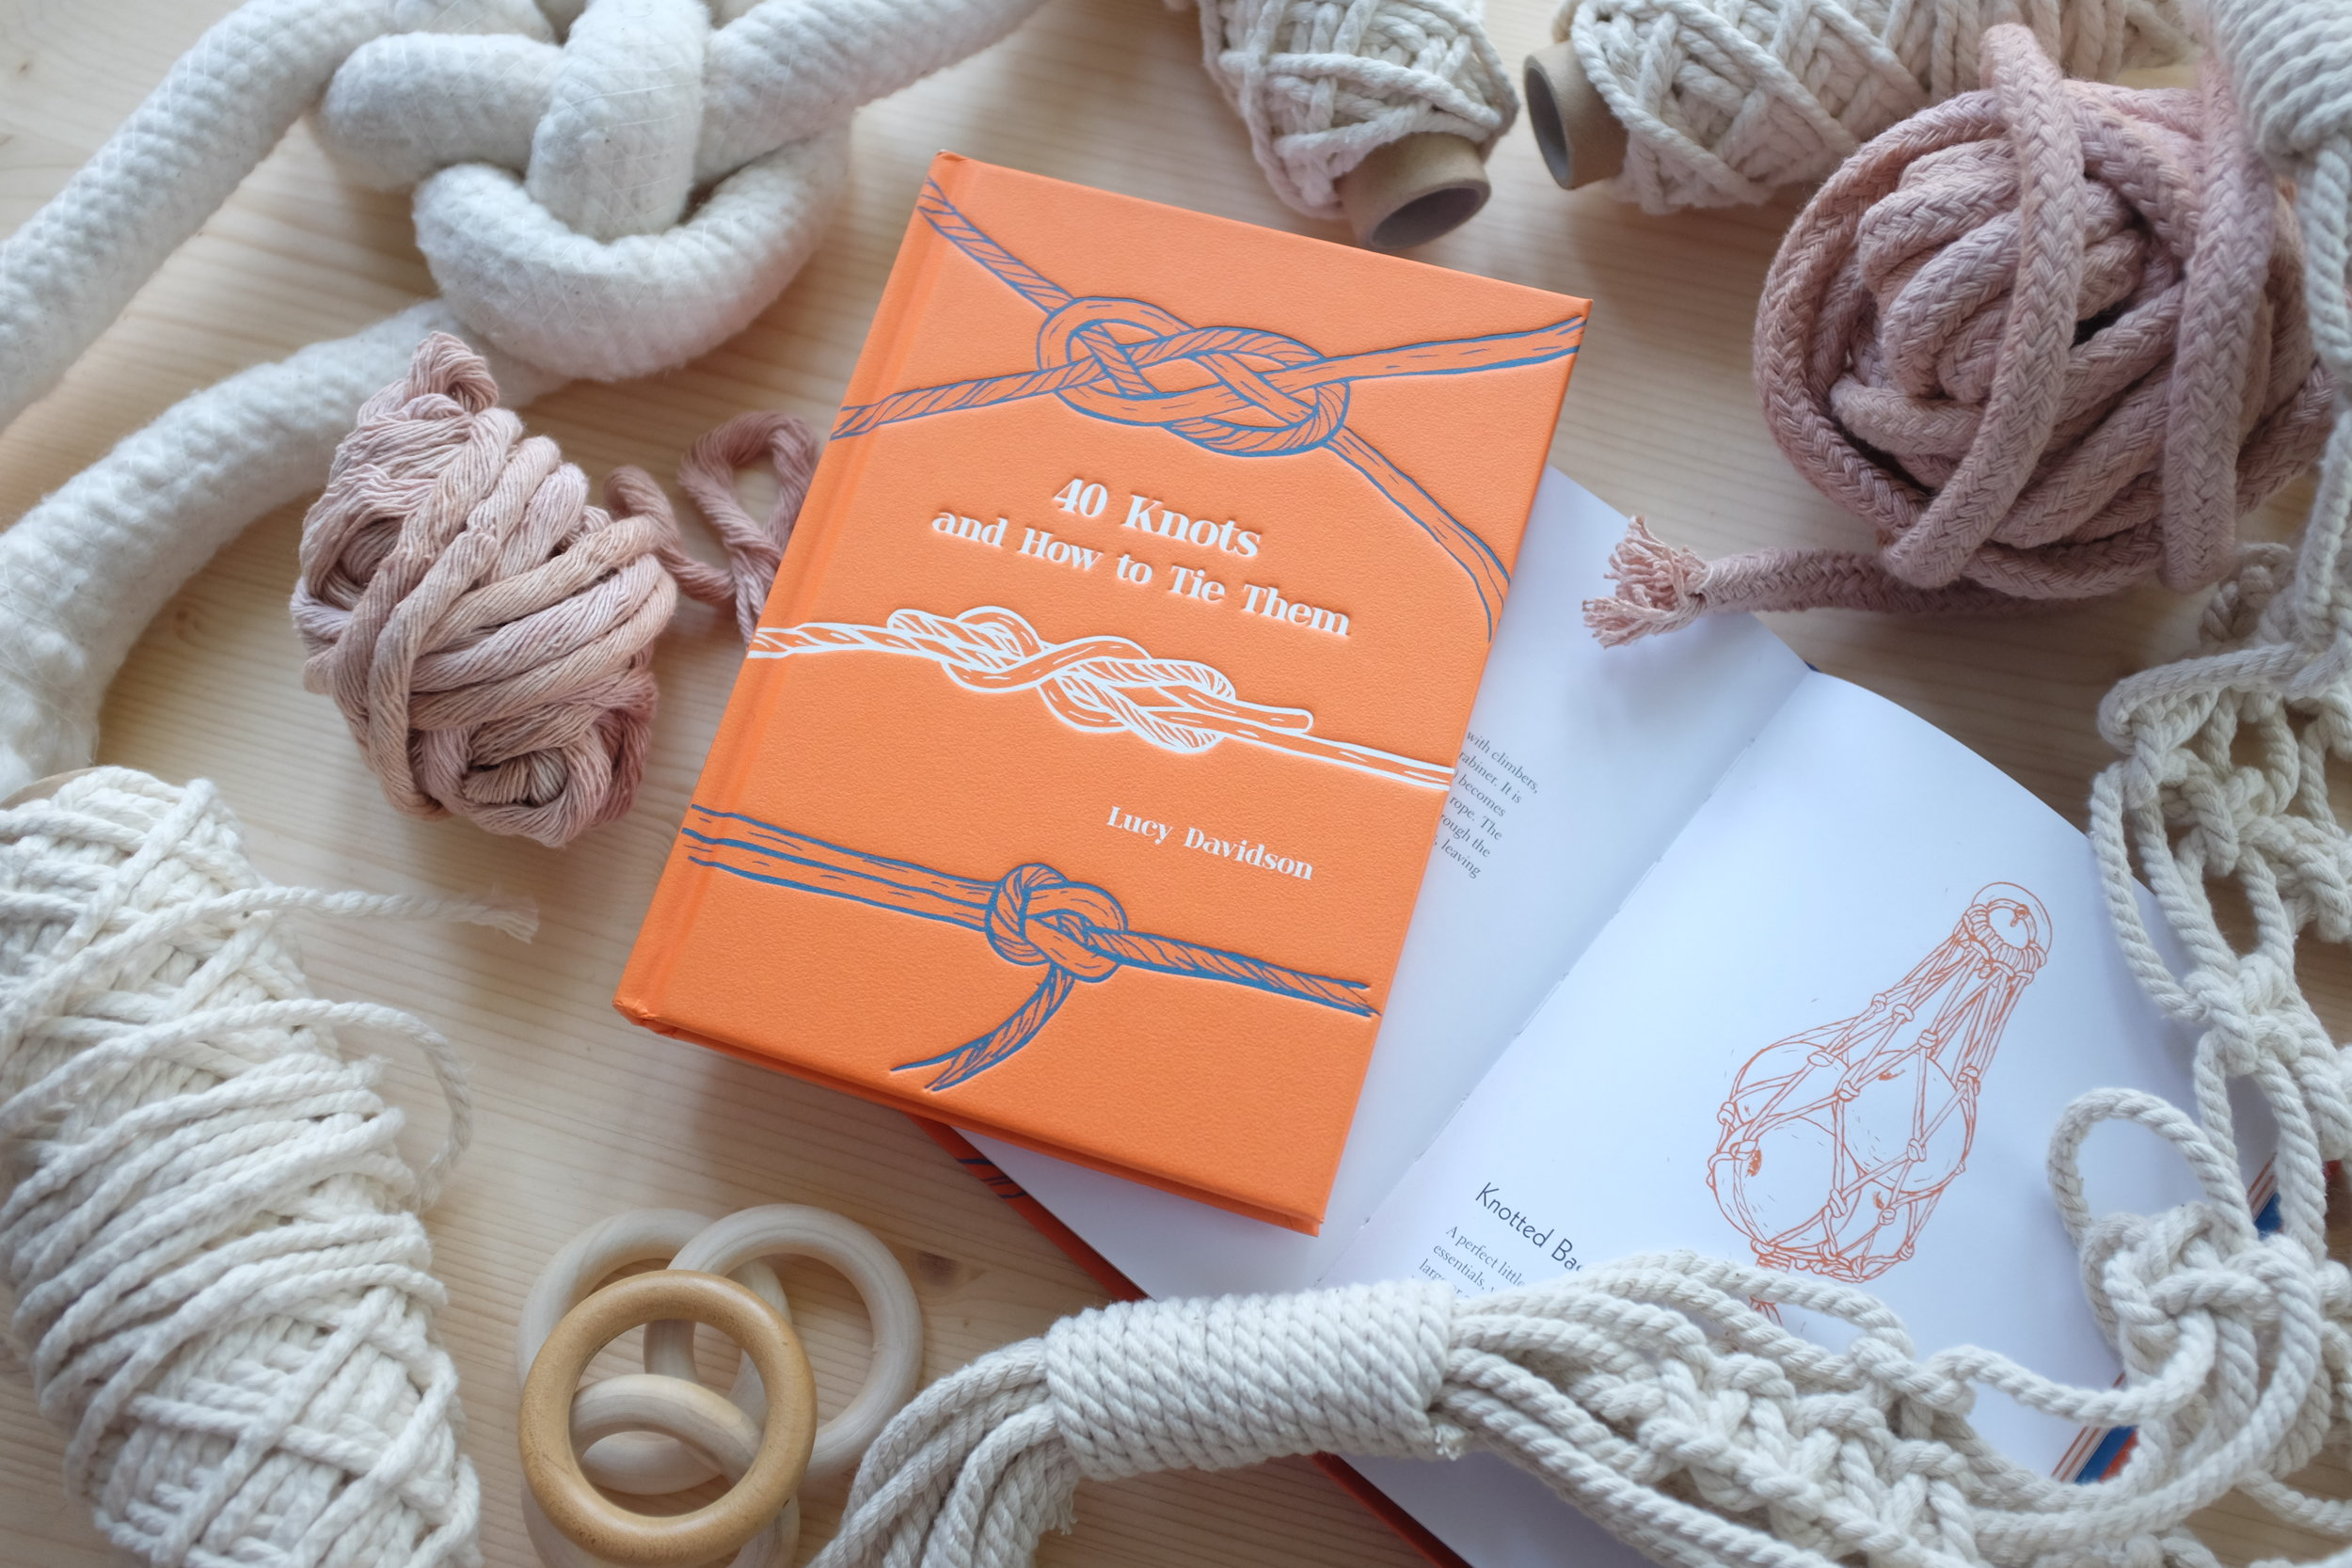 My book on knots was published. You can read more about it  here  and where to buy it. We also bought out first house!